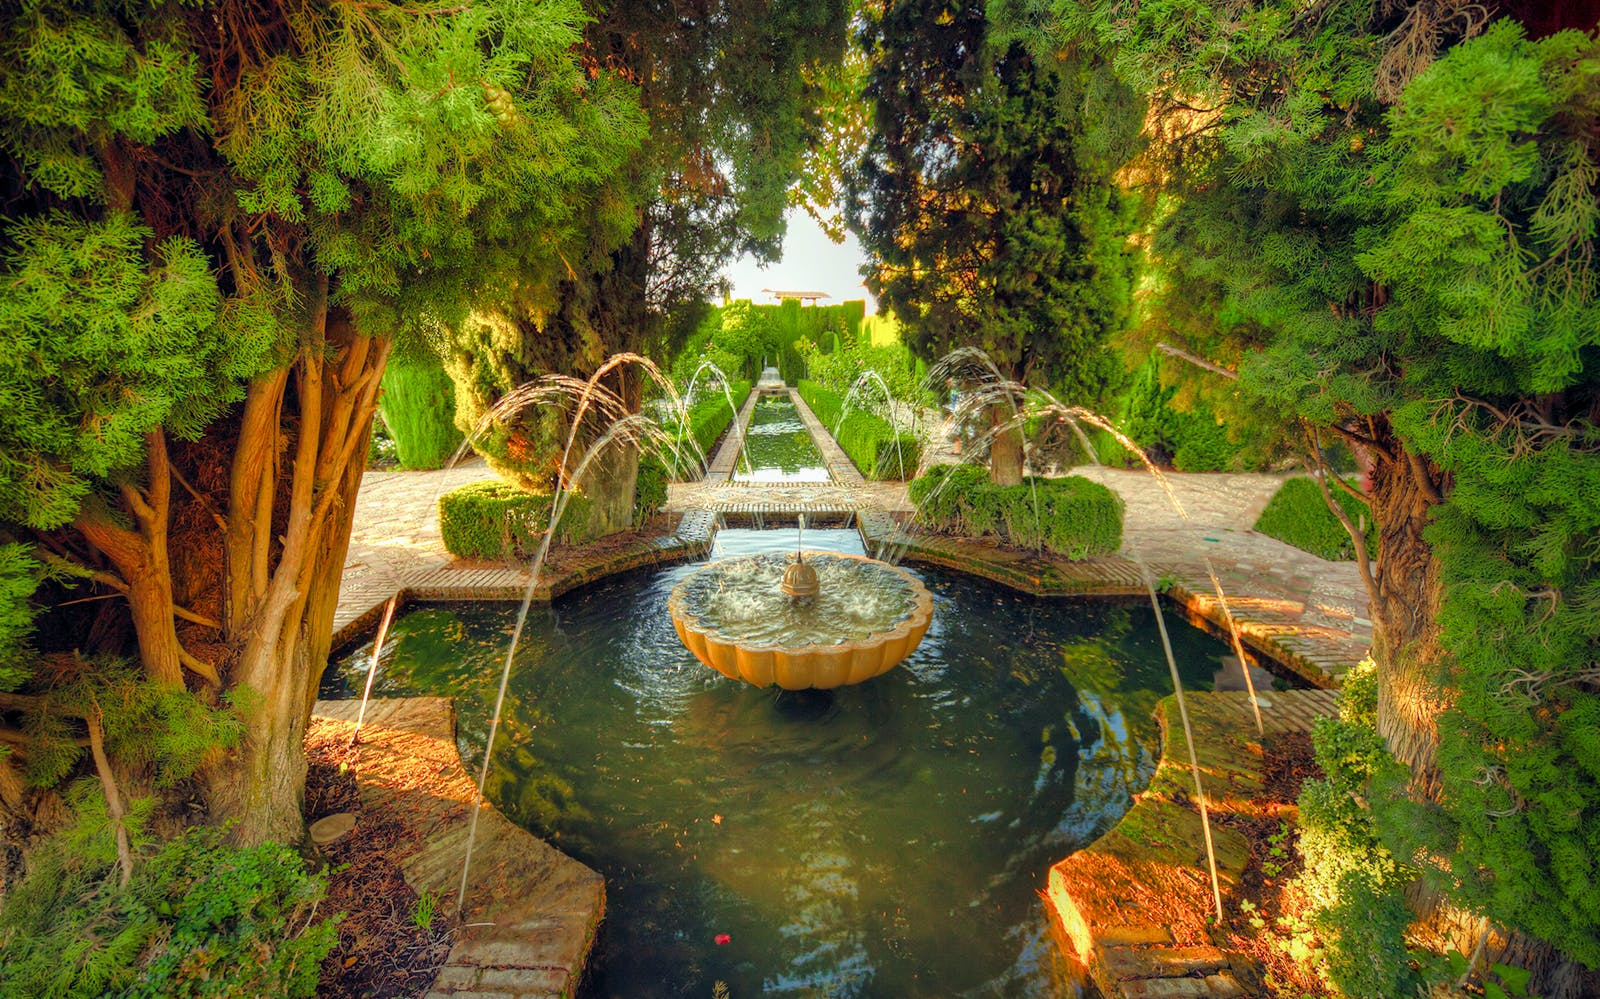 skip the line: alhambra, generalife, alcazaba, nasrid palaces with audioguide-2